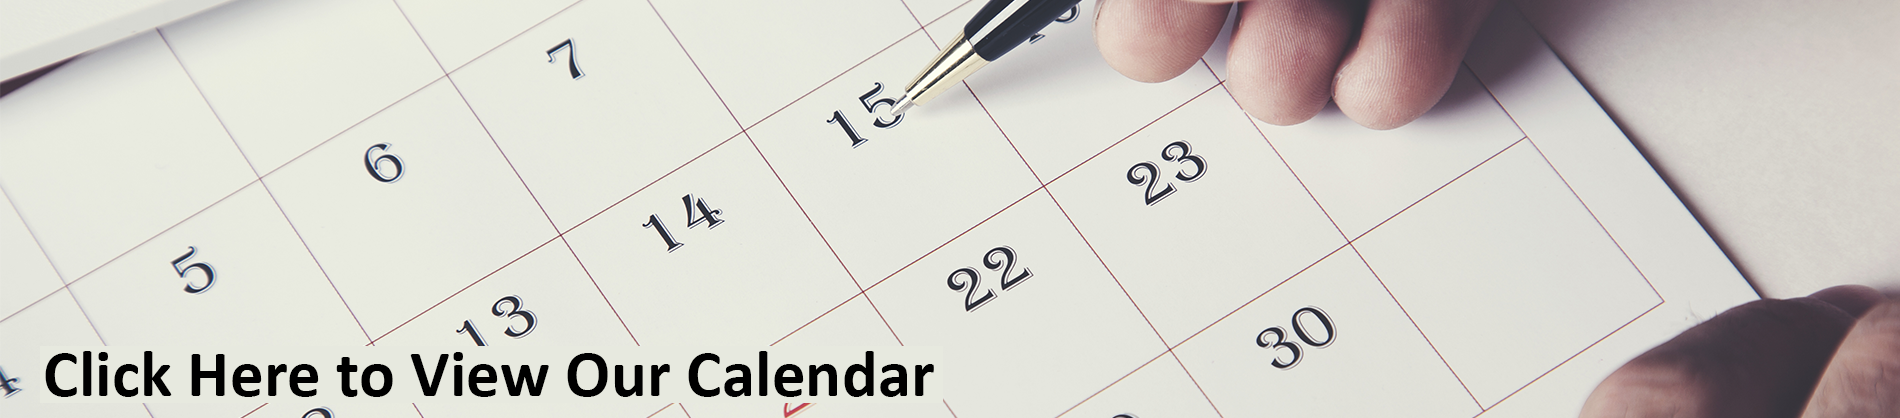 Click Here to visit our calendar